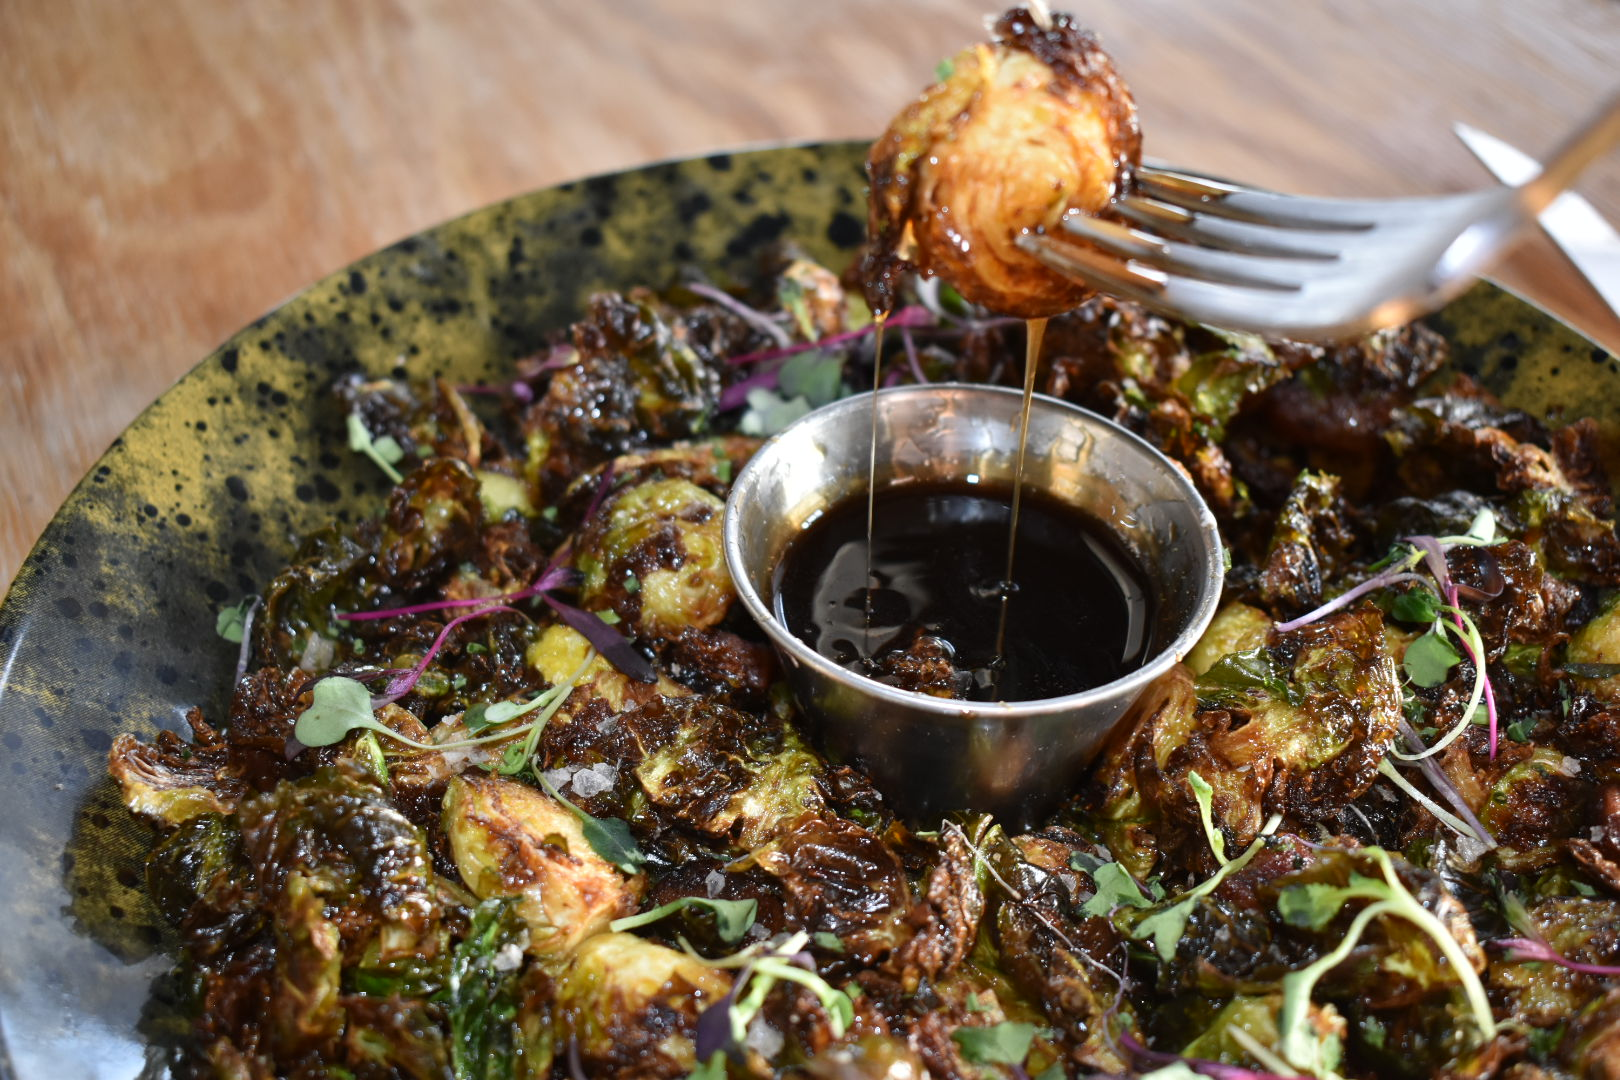 brussels sprouts mix in bowl with brussel sprout on fork being dipped in glaze